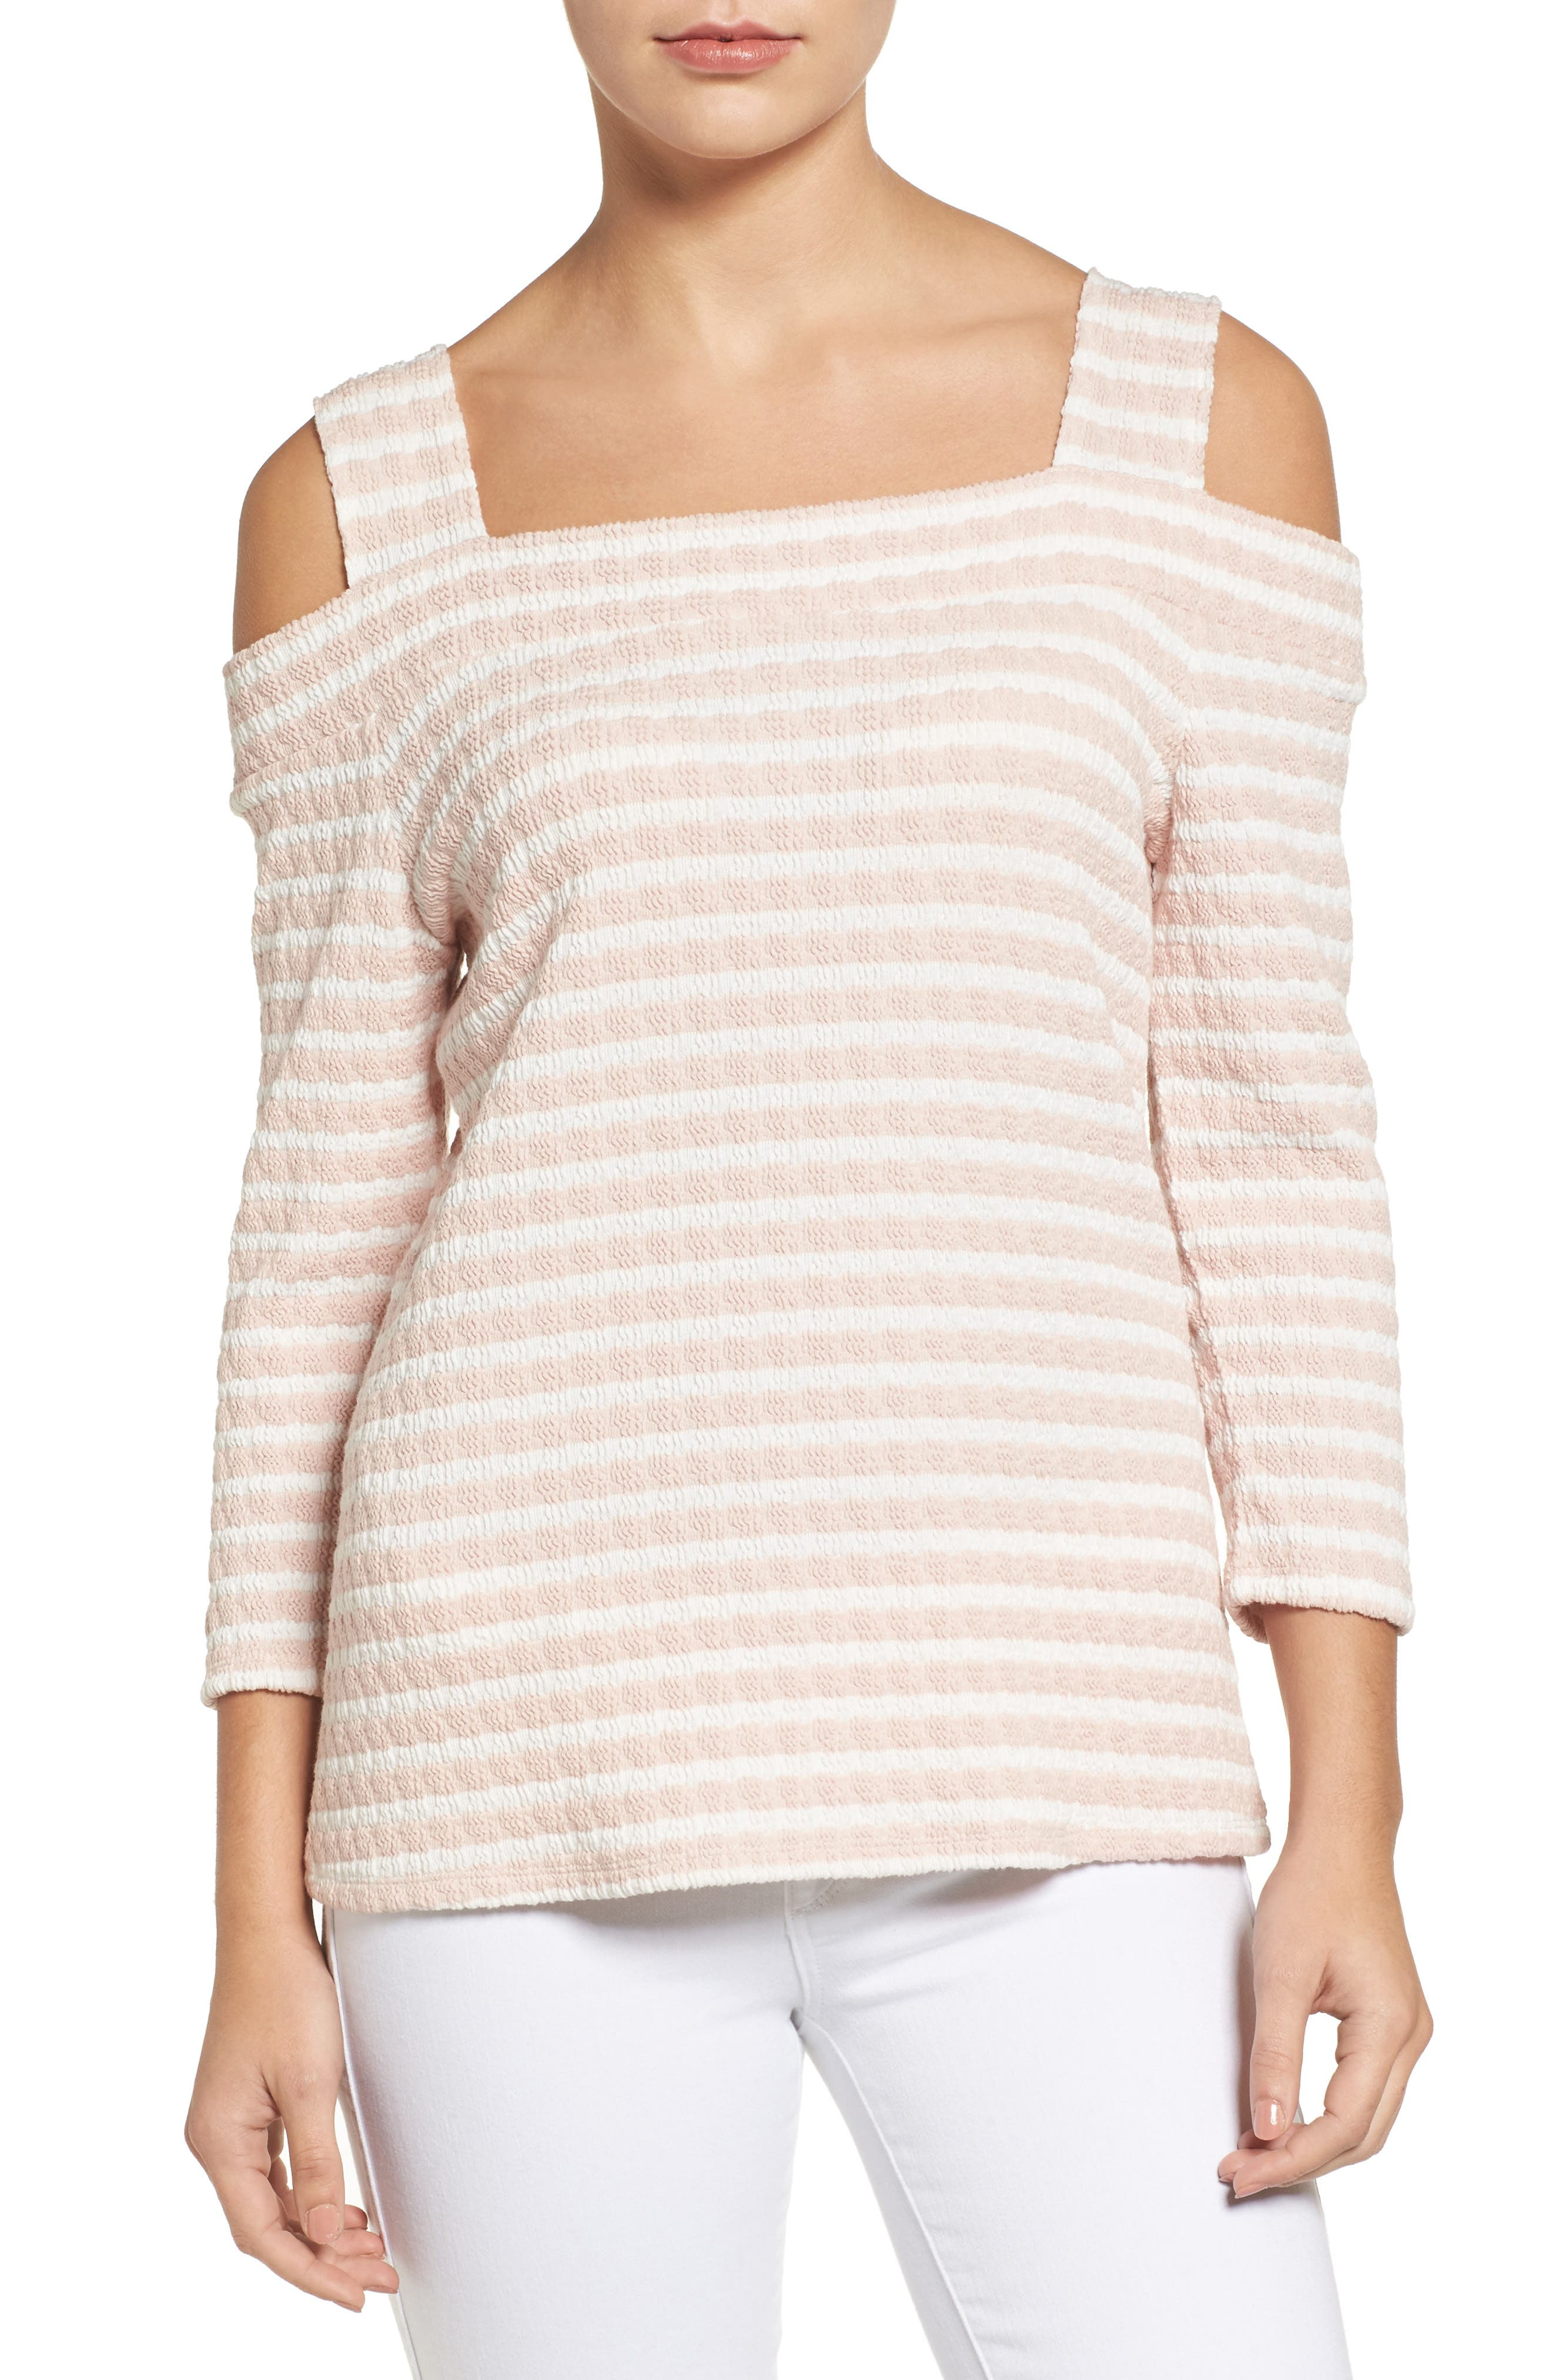 KUT FROM THE KLOTH, Fridi Texture Stripe Cold Shoulder Top, Main thumbnail 1, color, 194